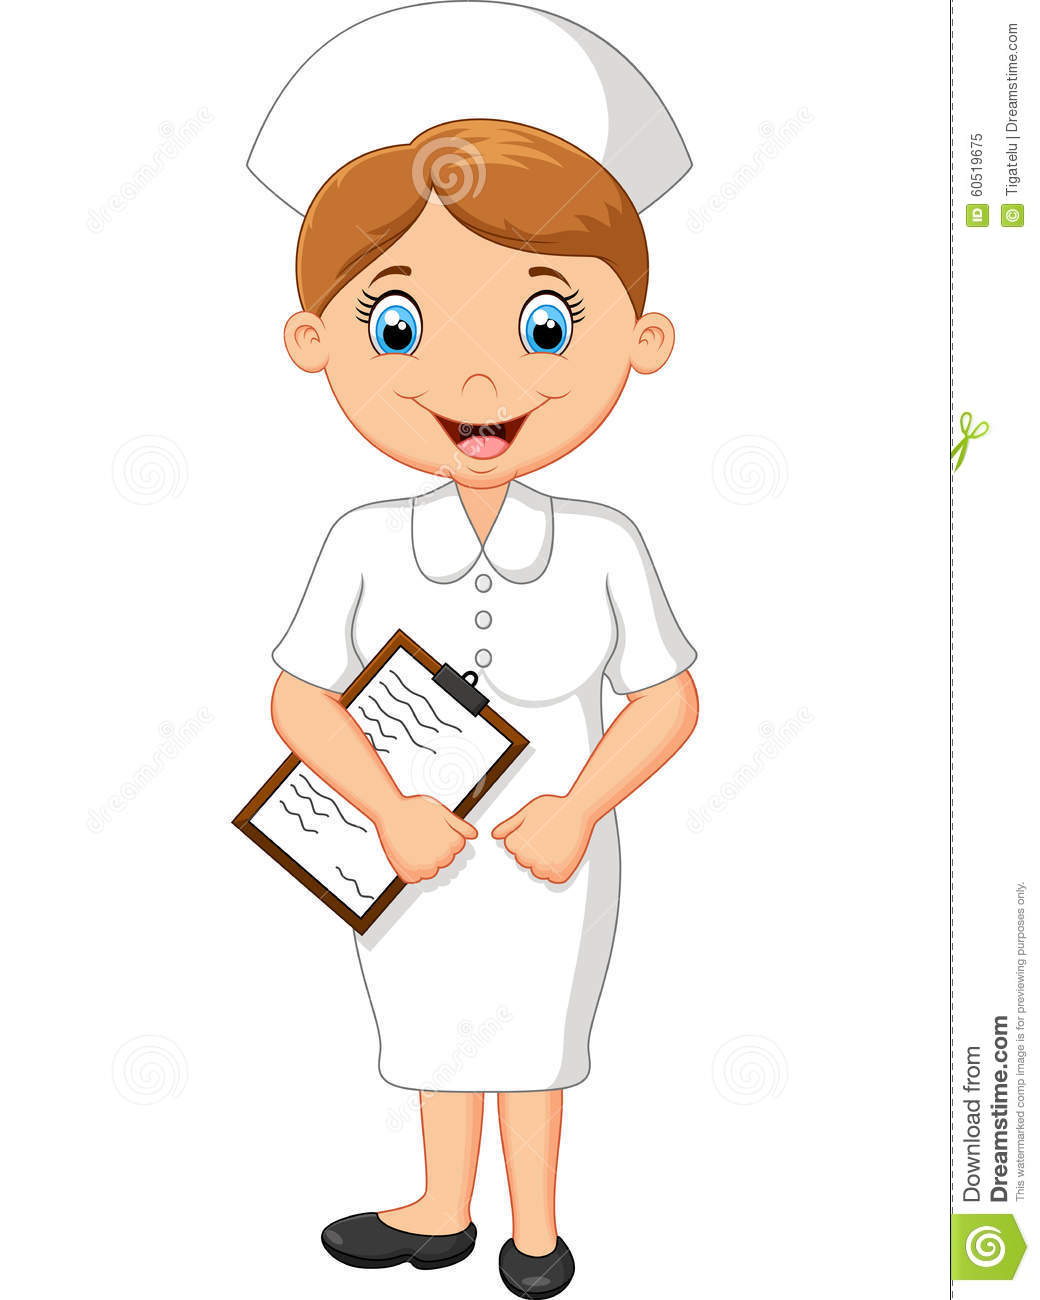 nurse management styles Leadership style and choice of strategy in conflict management among israeli nurse managers in general hospitals tova hendelphd, rn 1, miri fish ma, rn.